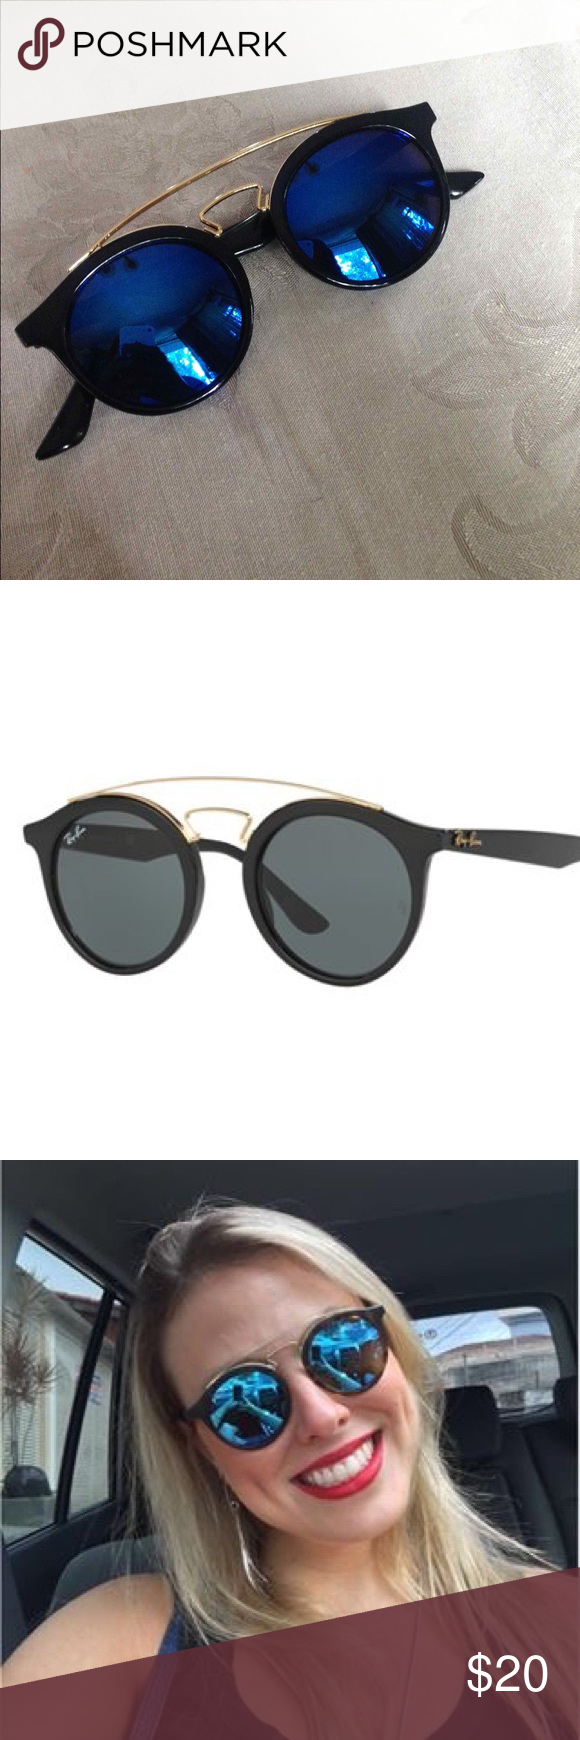 3983a2be69e Lookalike Gatsby II Ray-Ban RB4257 Sunglasses These cool sunglasses are  very fashionable and they re incredibly similar to the Gatsby II Ray Bans  RB4257-- ...